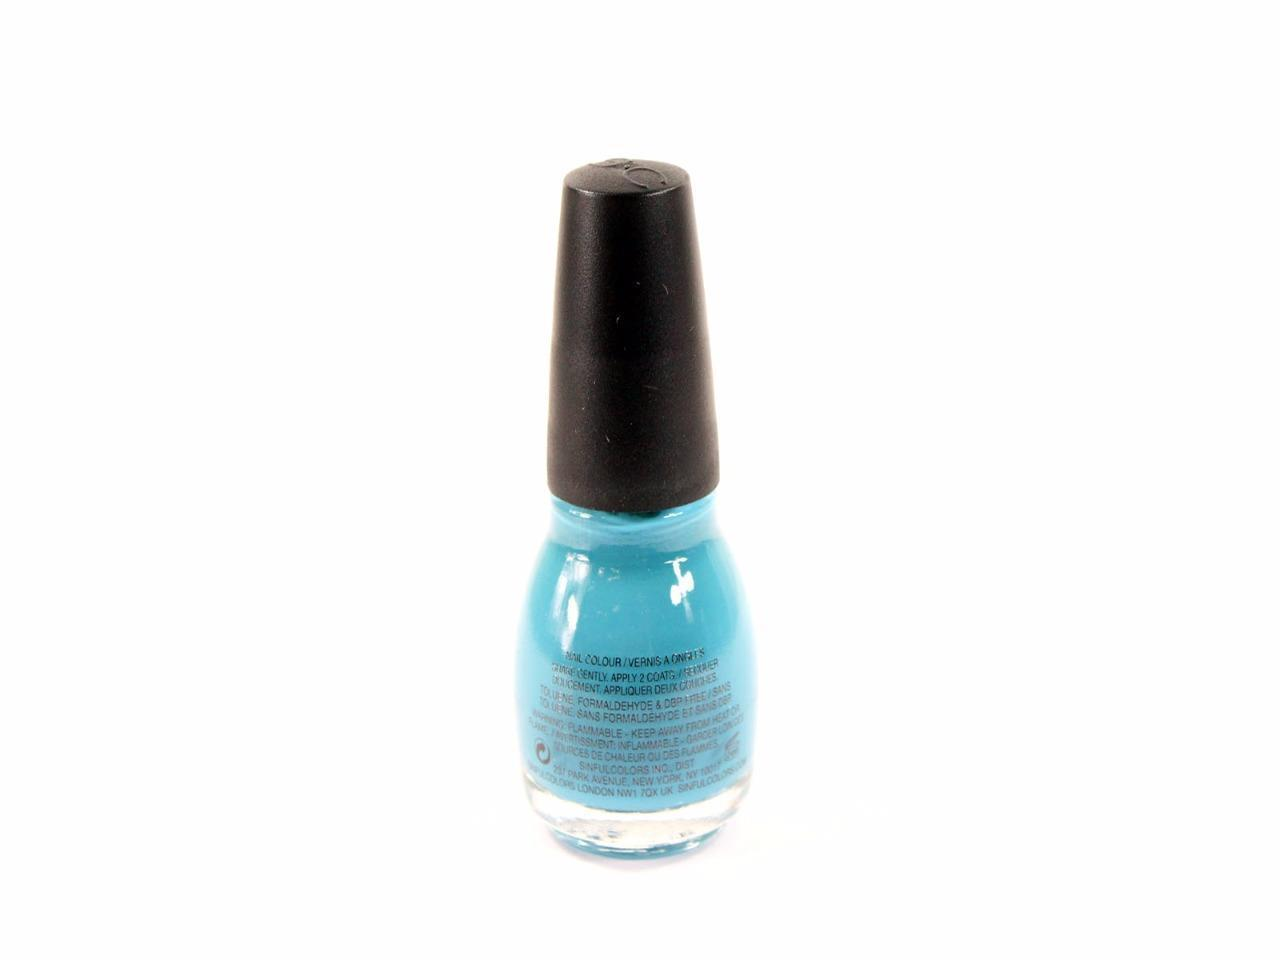 Set of 2 Sinful Colors Professional 0 5 Oz/15ml Savage #950 Nail Polish